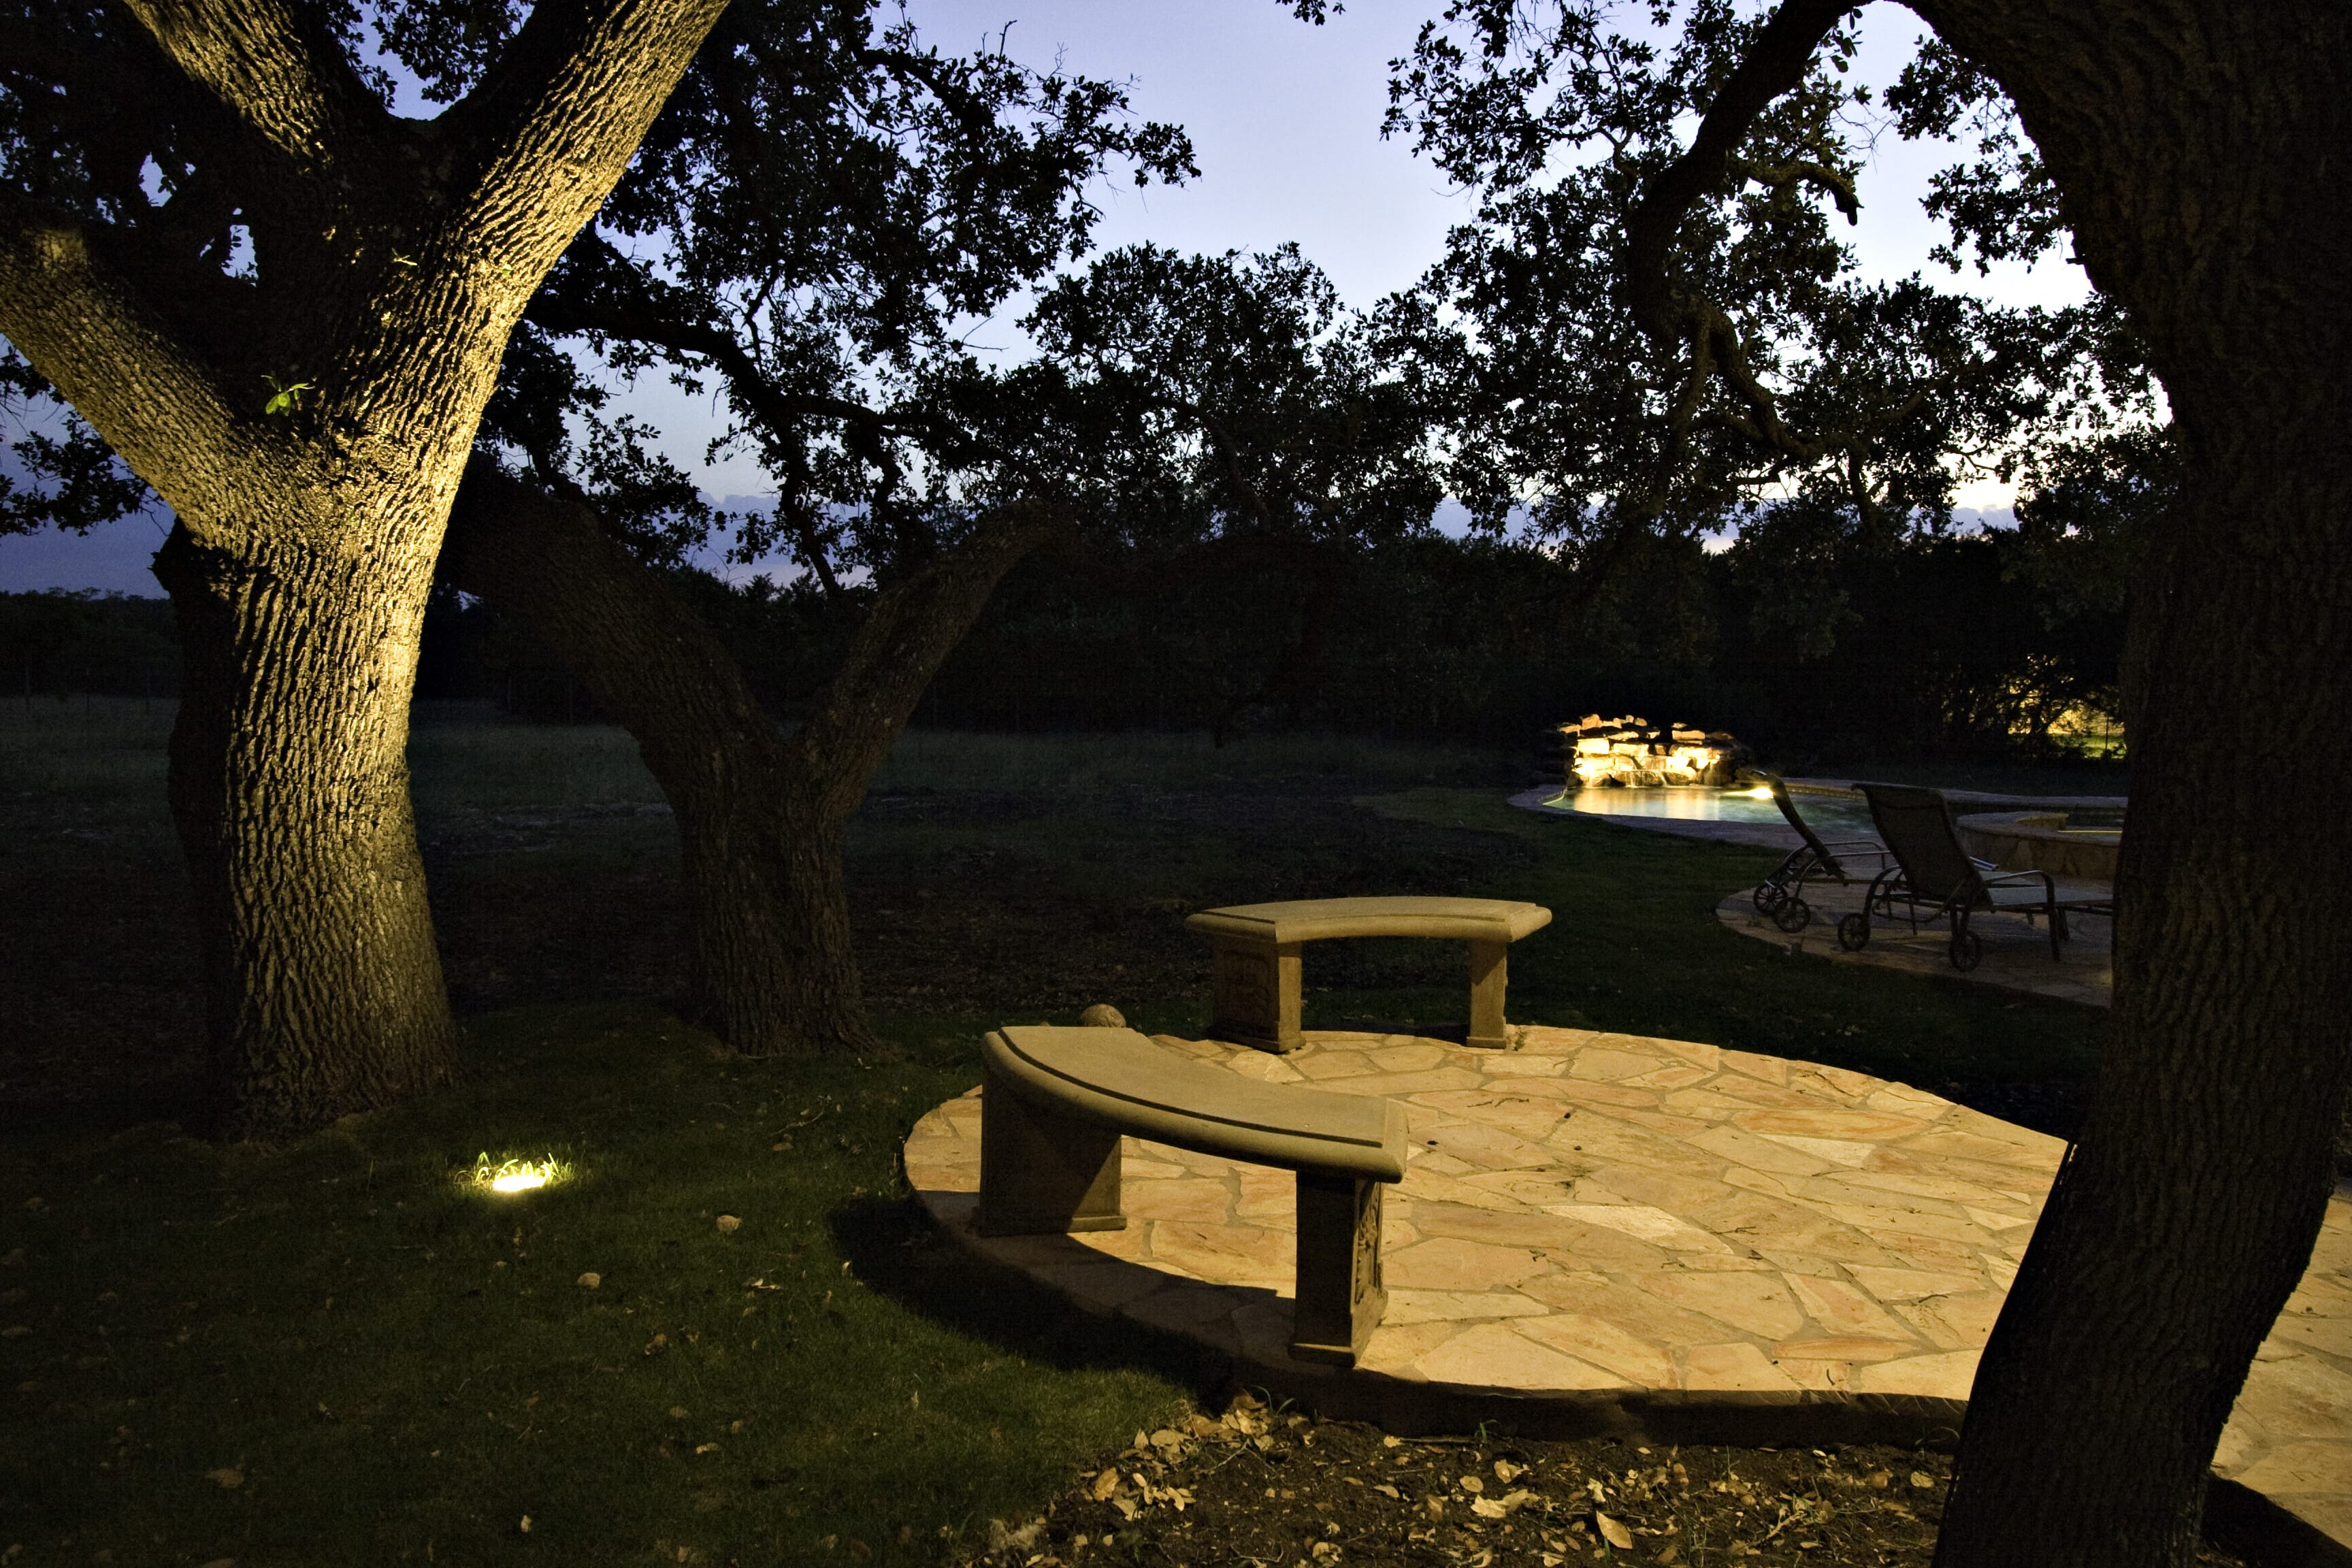 Patio backyard outdoor lighting